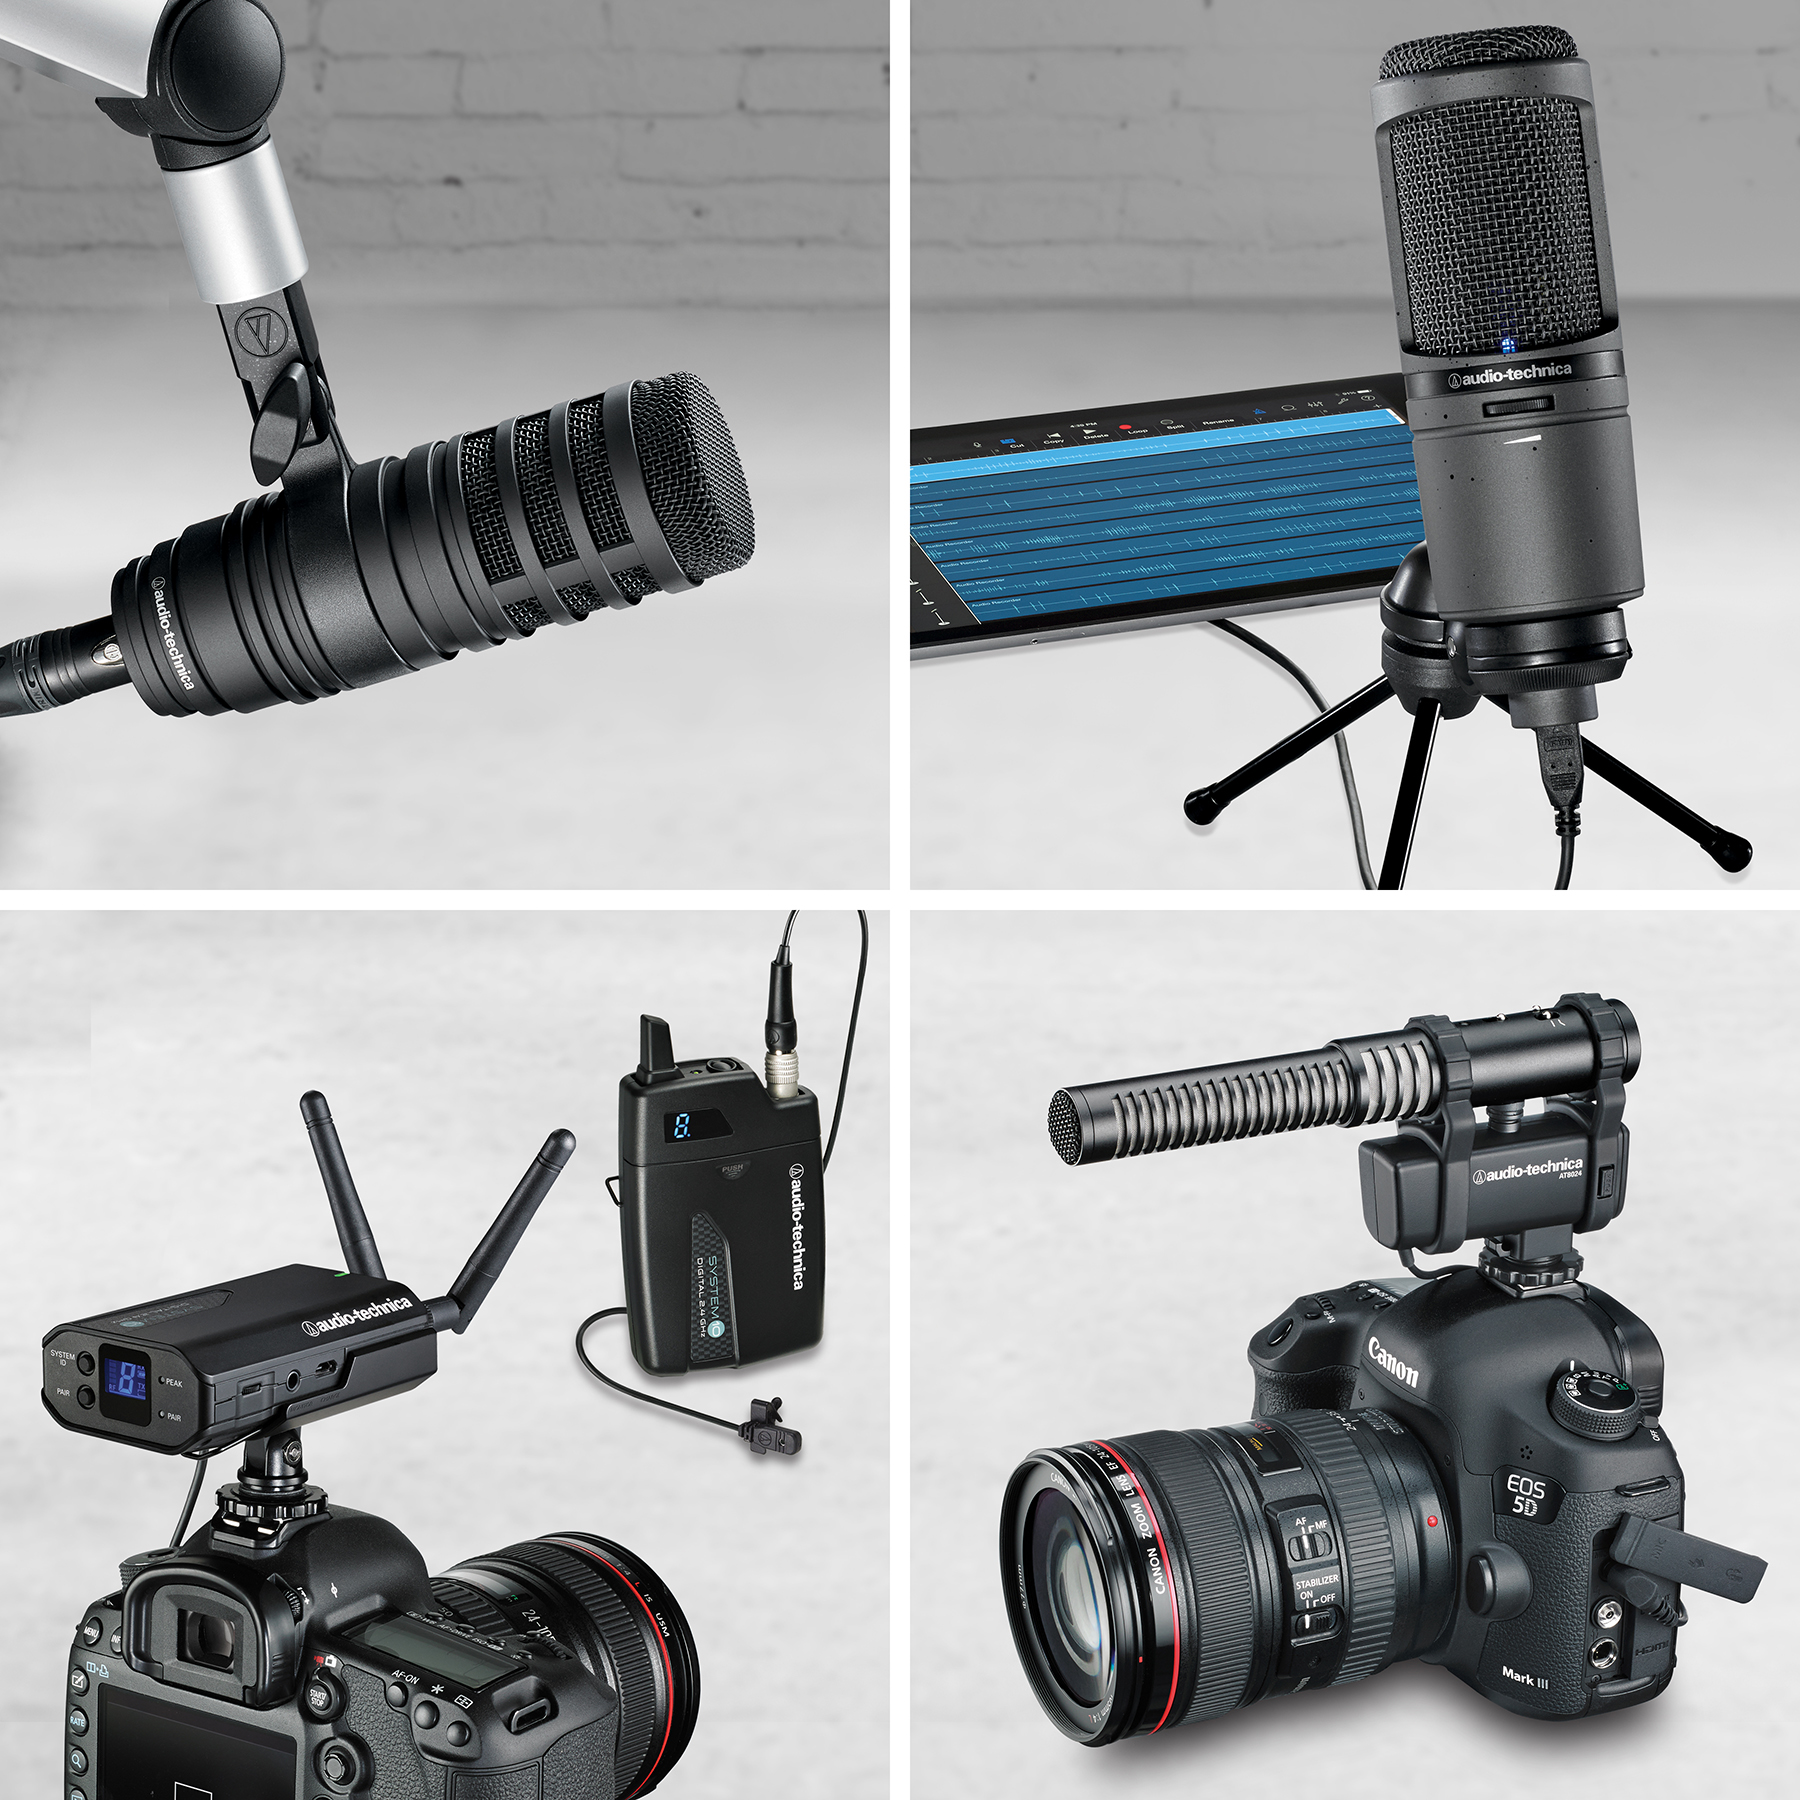 http://www.clynemedia.com/audiotechnica/ContentCreation/BP40_AT2020USBi_System10CameraMountWireless_AT8024.jpg